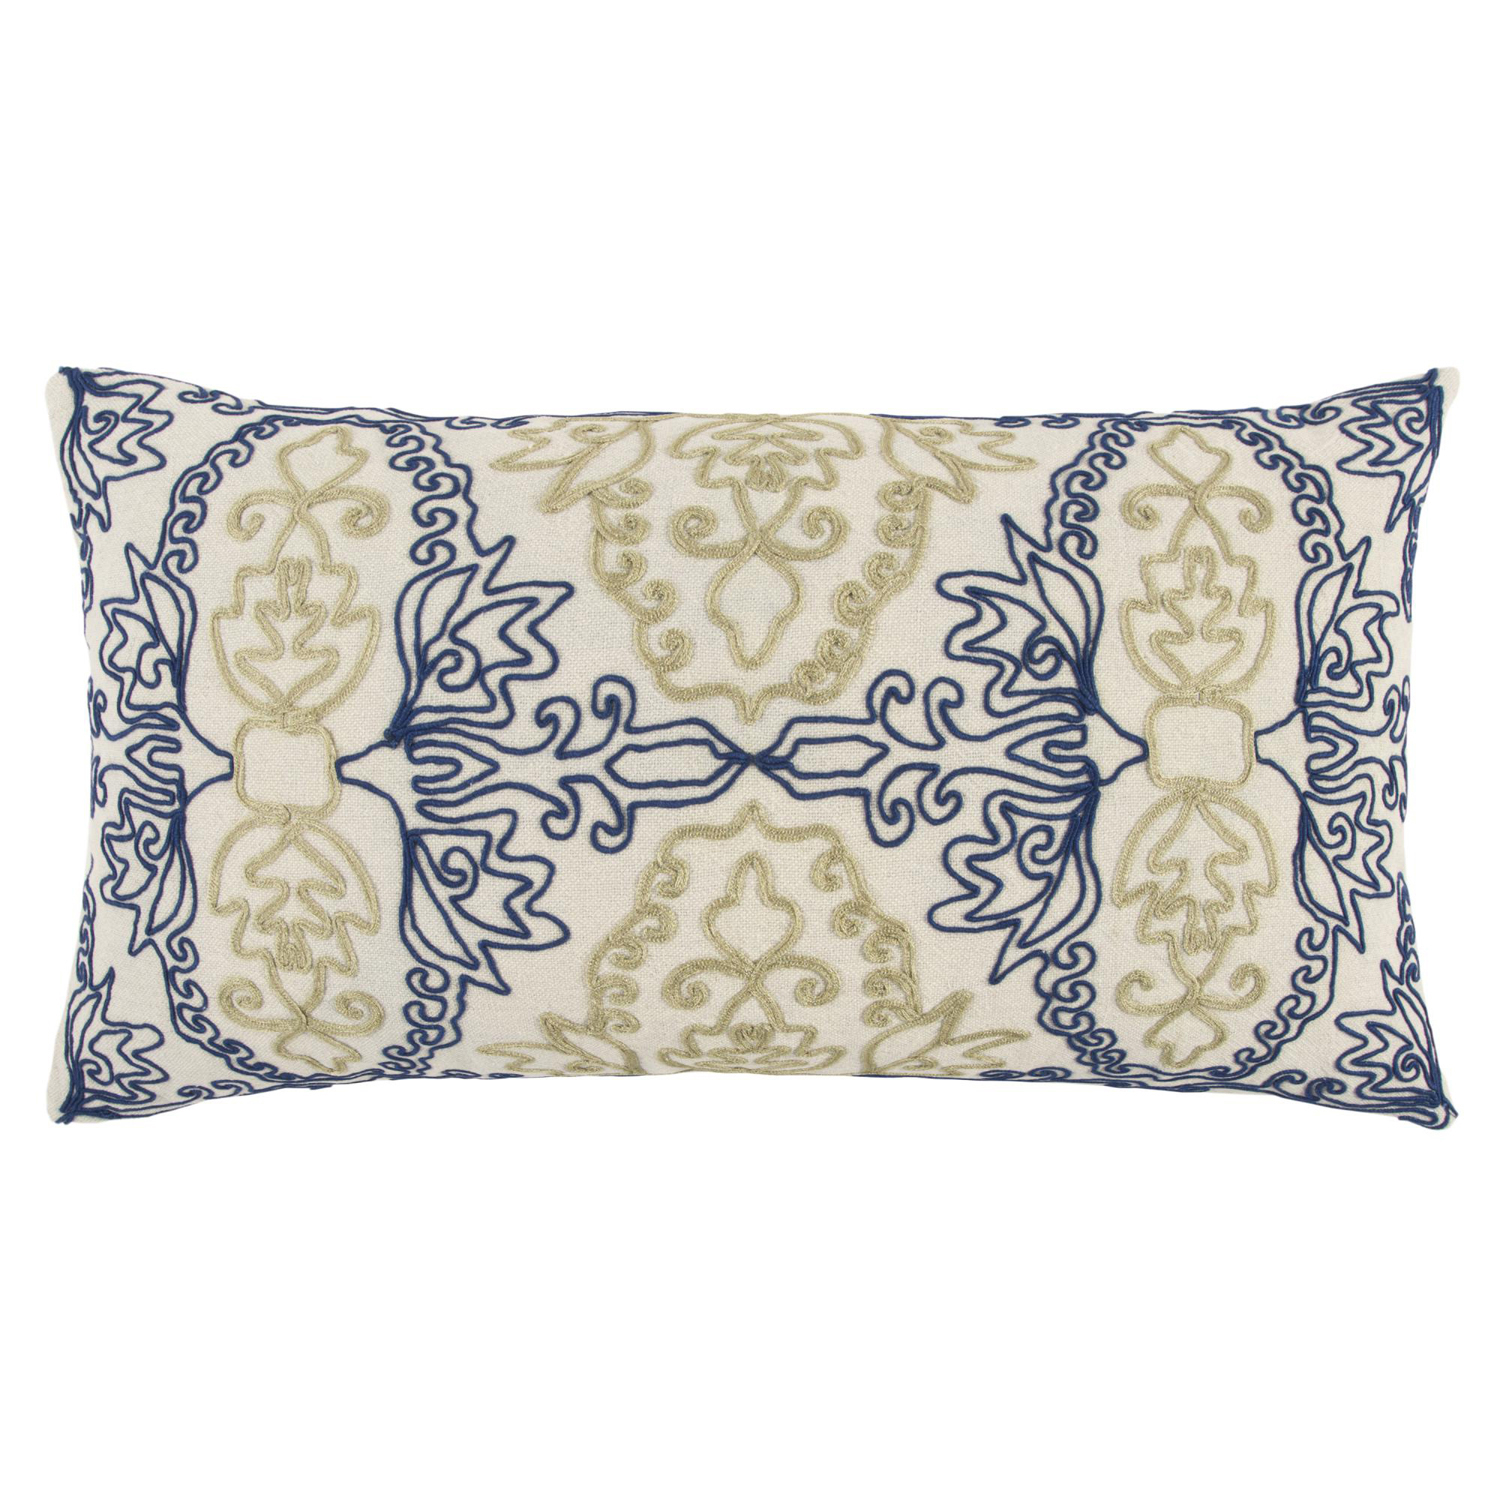 Embellished Medallion Blue Lumbar Pillow Cover